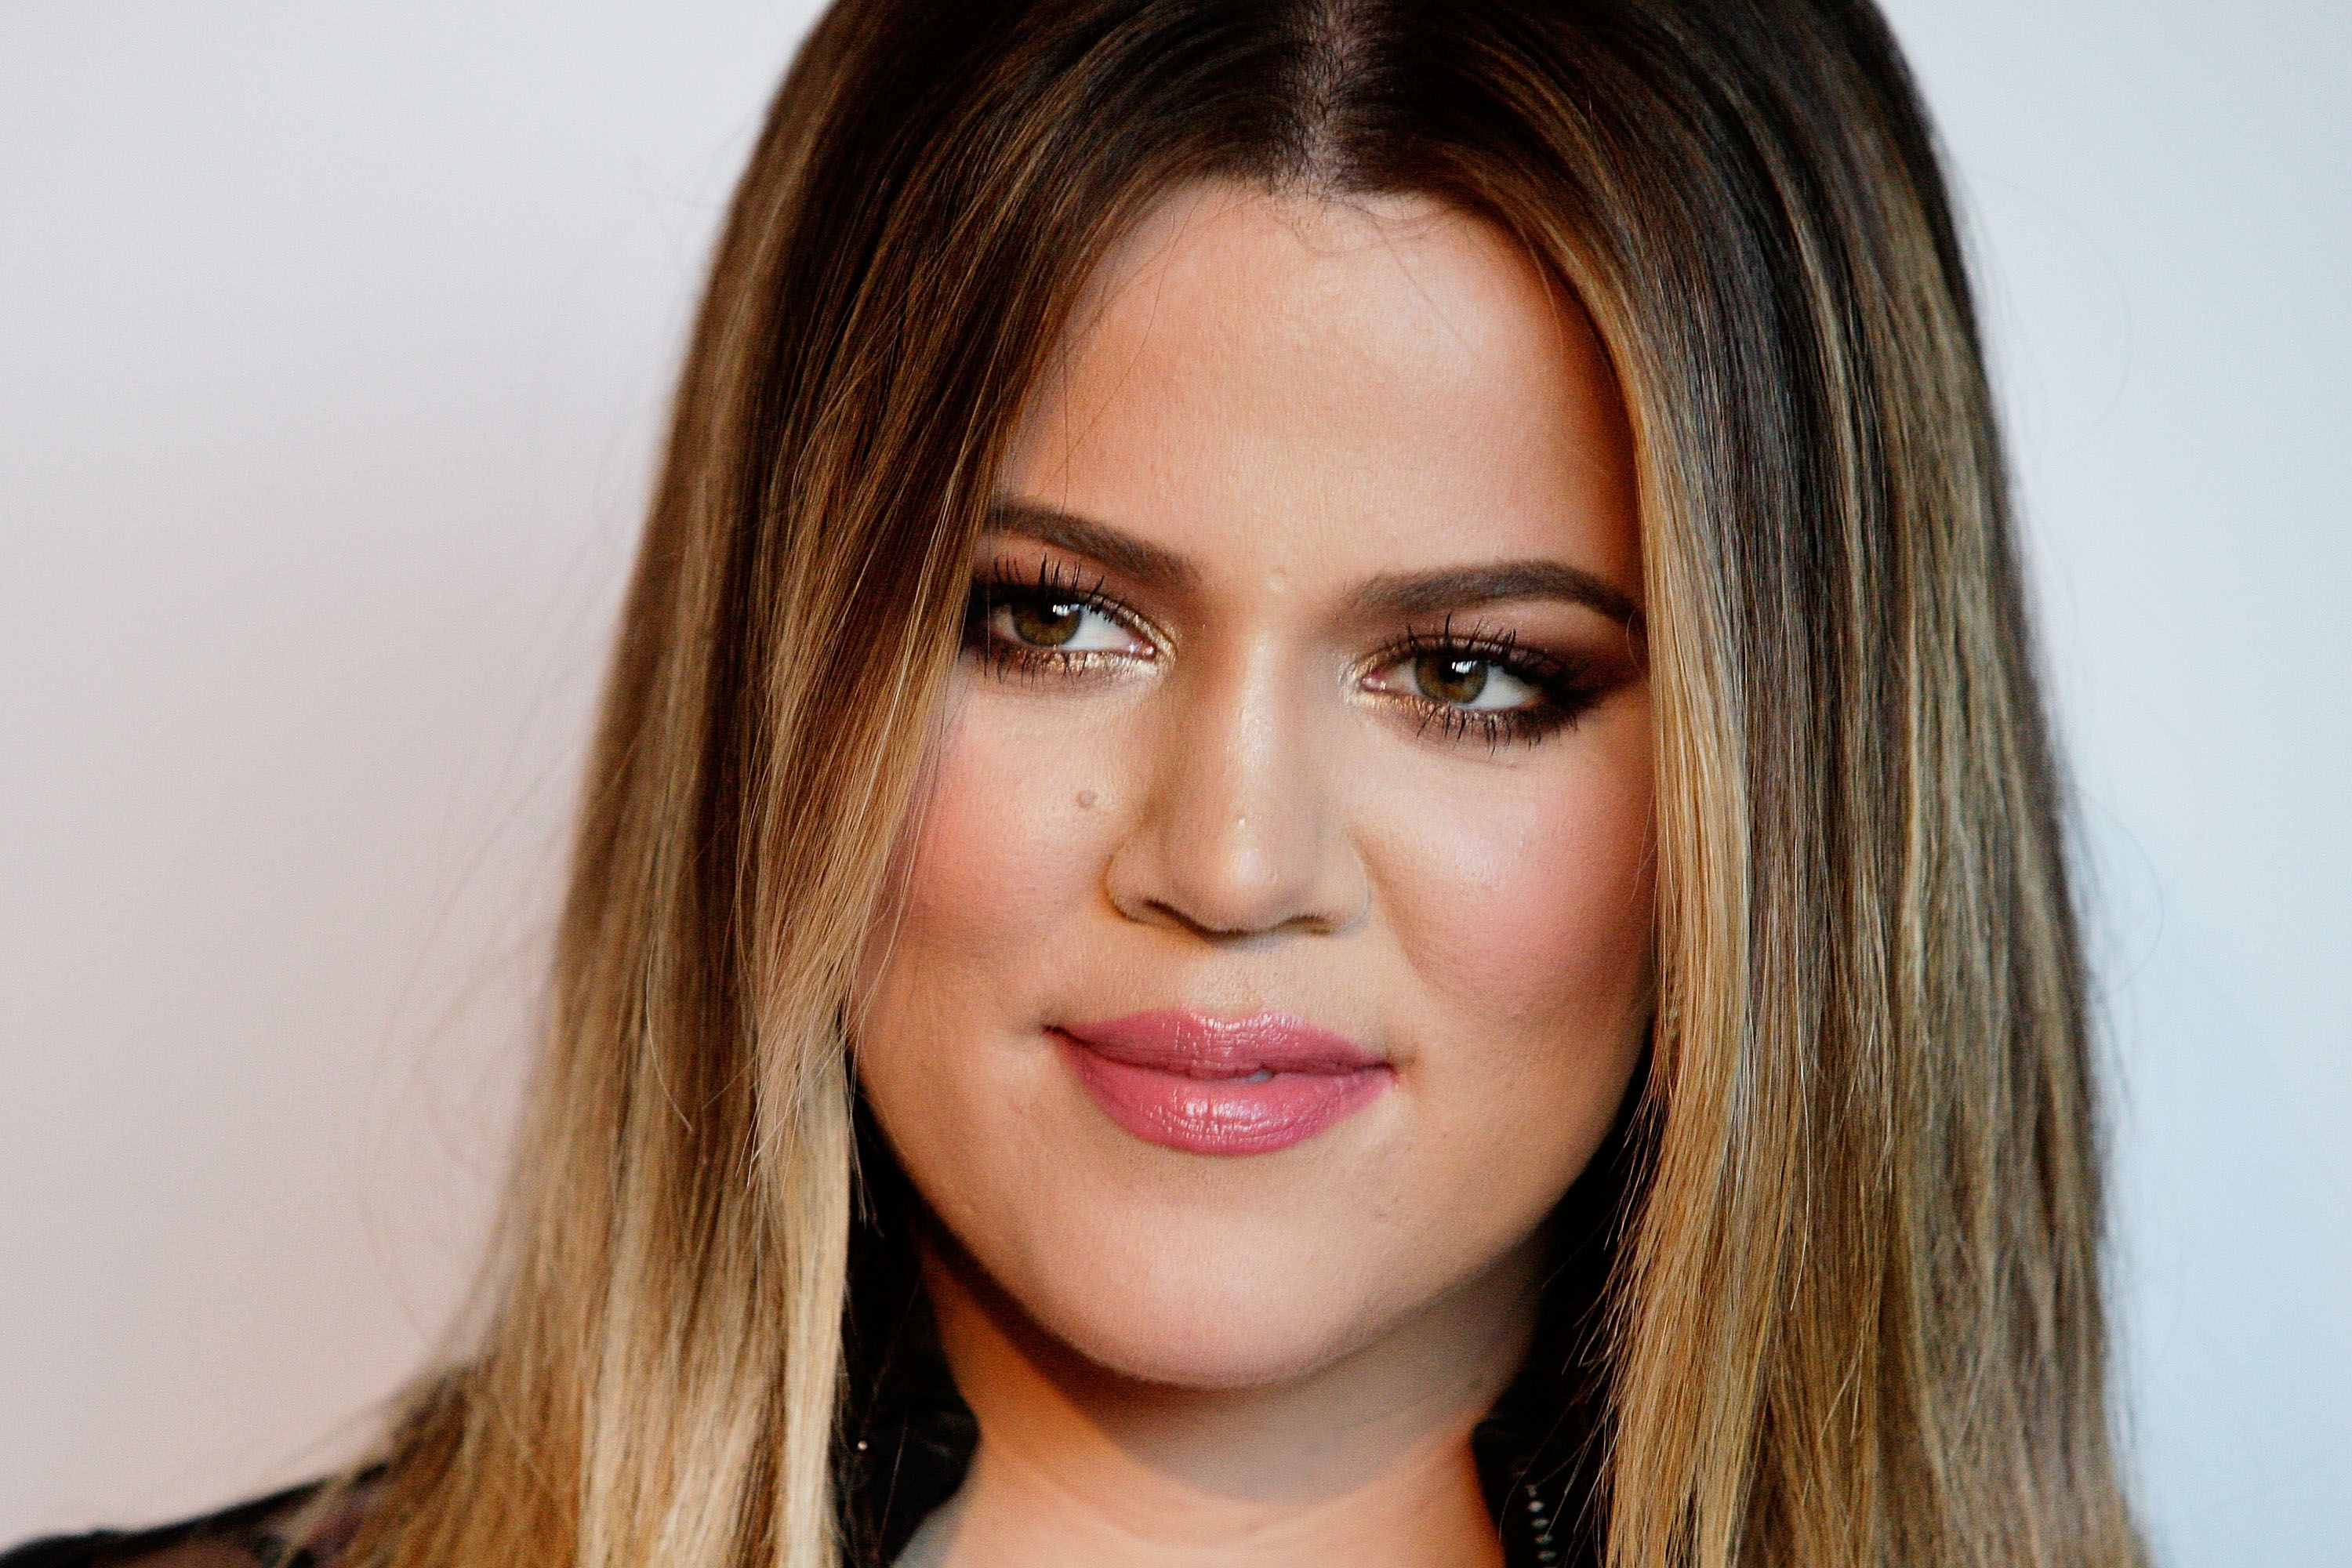 Khloé Kardashian during the Kardashian Kollection cocktail party at the Park Hyatt Guest House on November 19, 2013 in Sydney, Australia. | Source: Getty Images